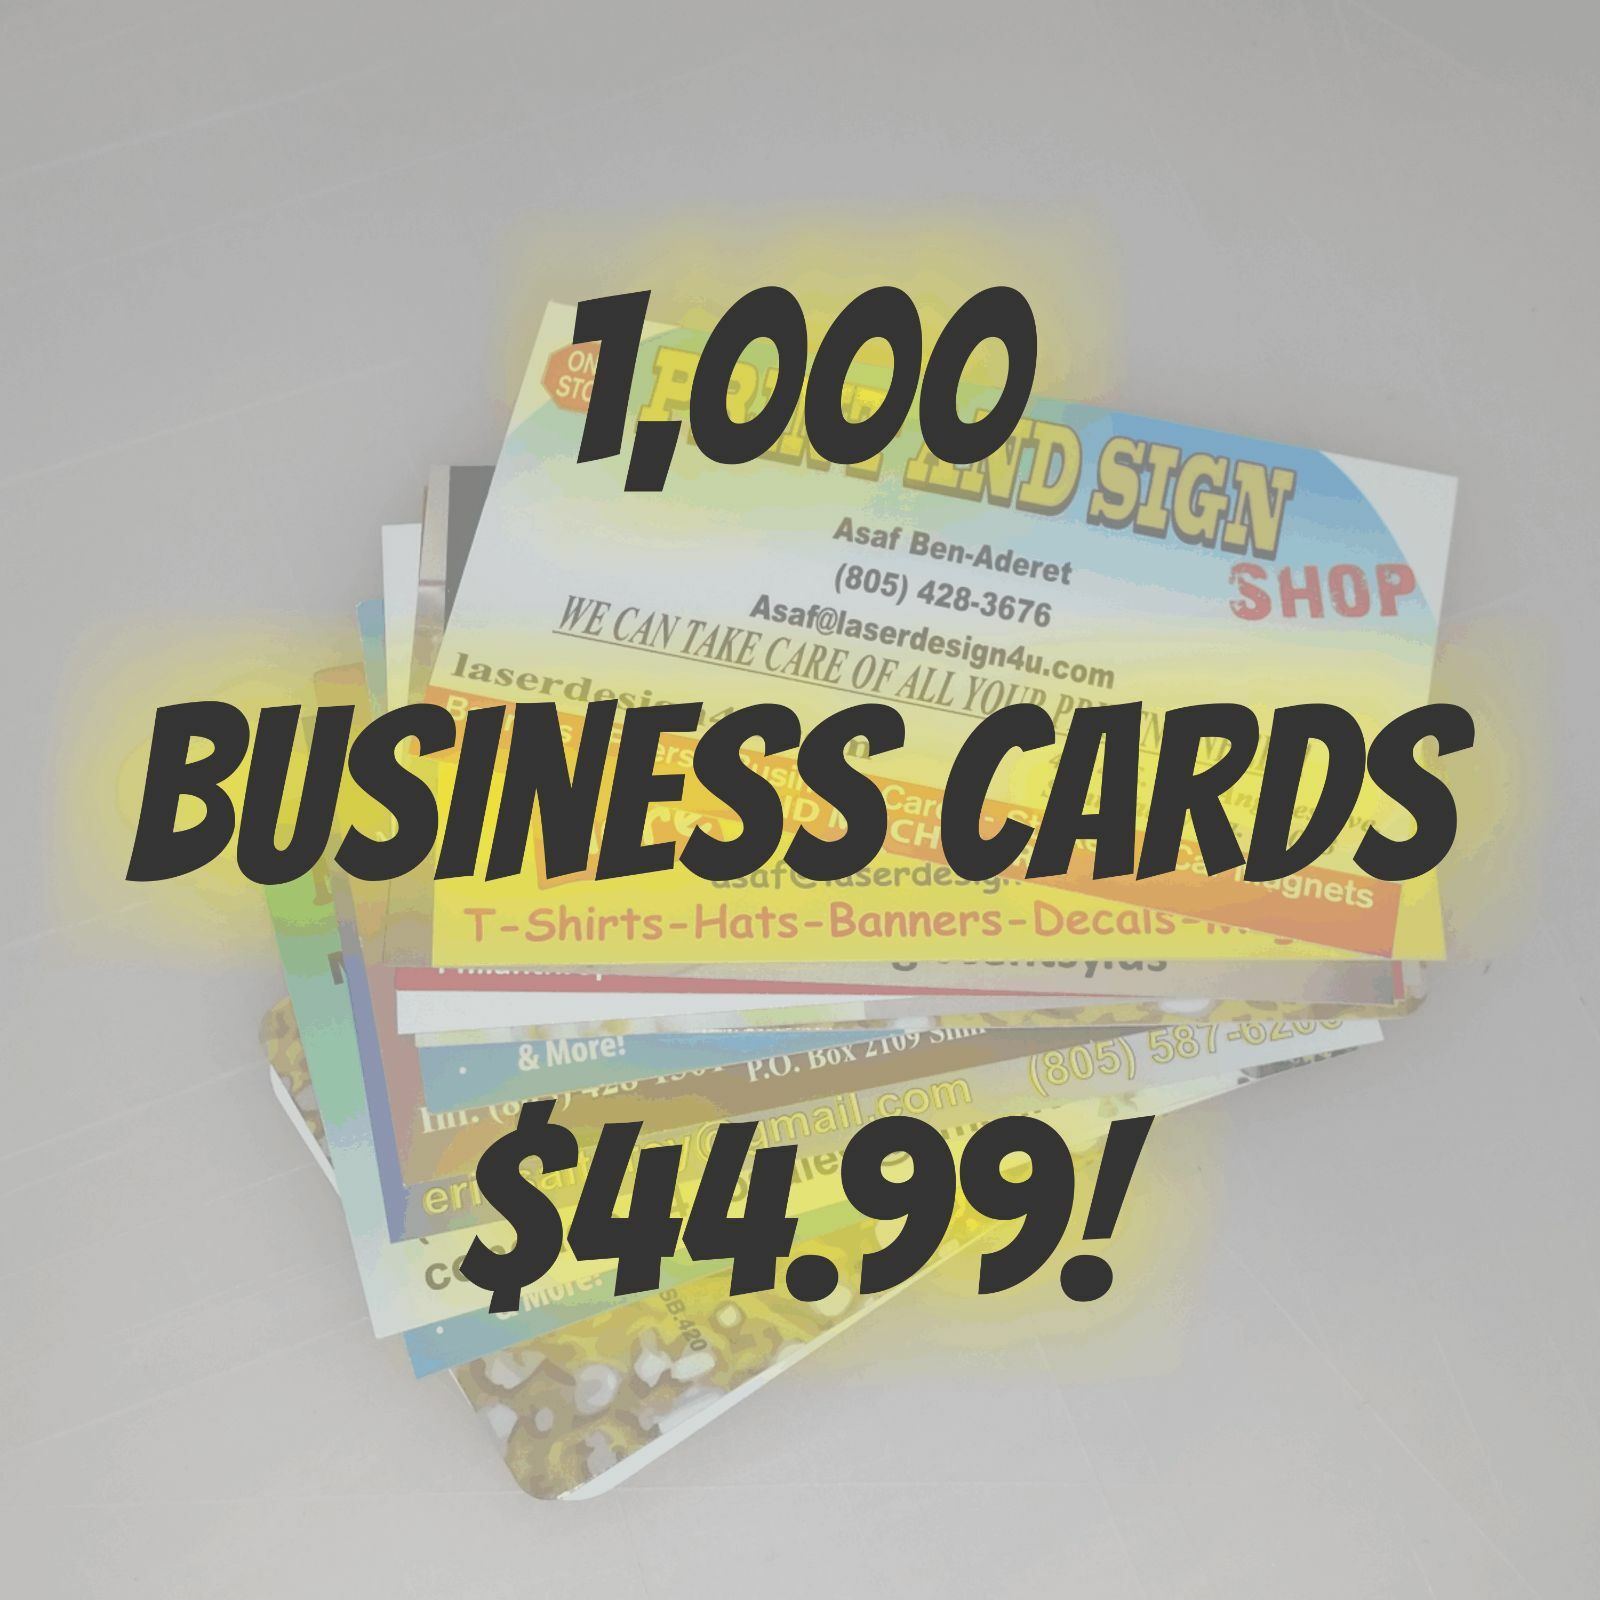 1000 double sided business cards gallery free business cards 1000 double sided business cards images free business cards elegant stock of double sided business cards magicingreecefo Gallery